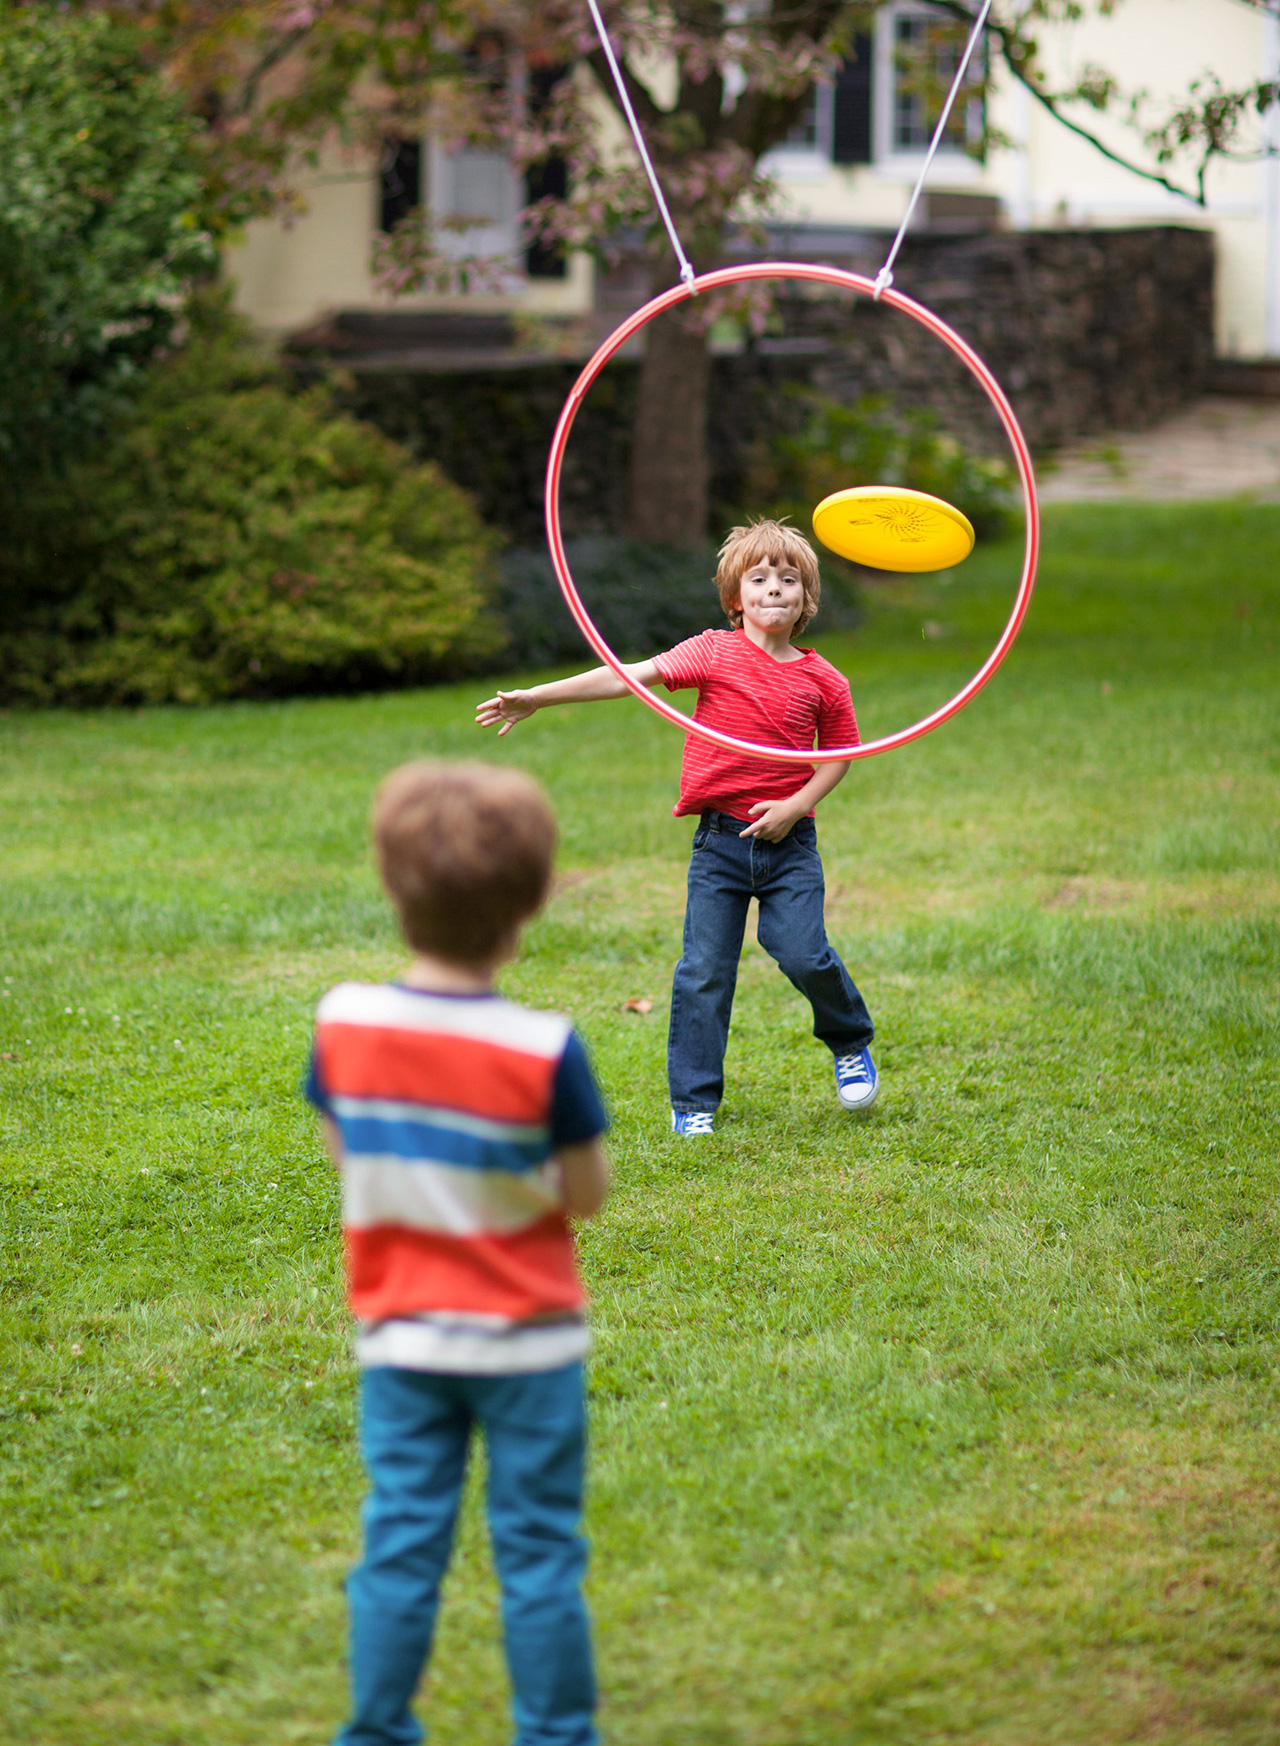 kids playing flying disc toss outdoors